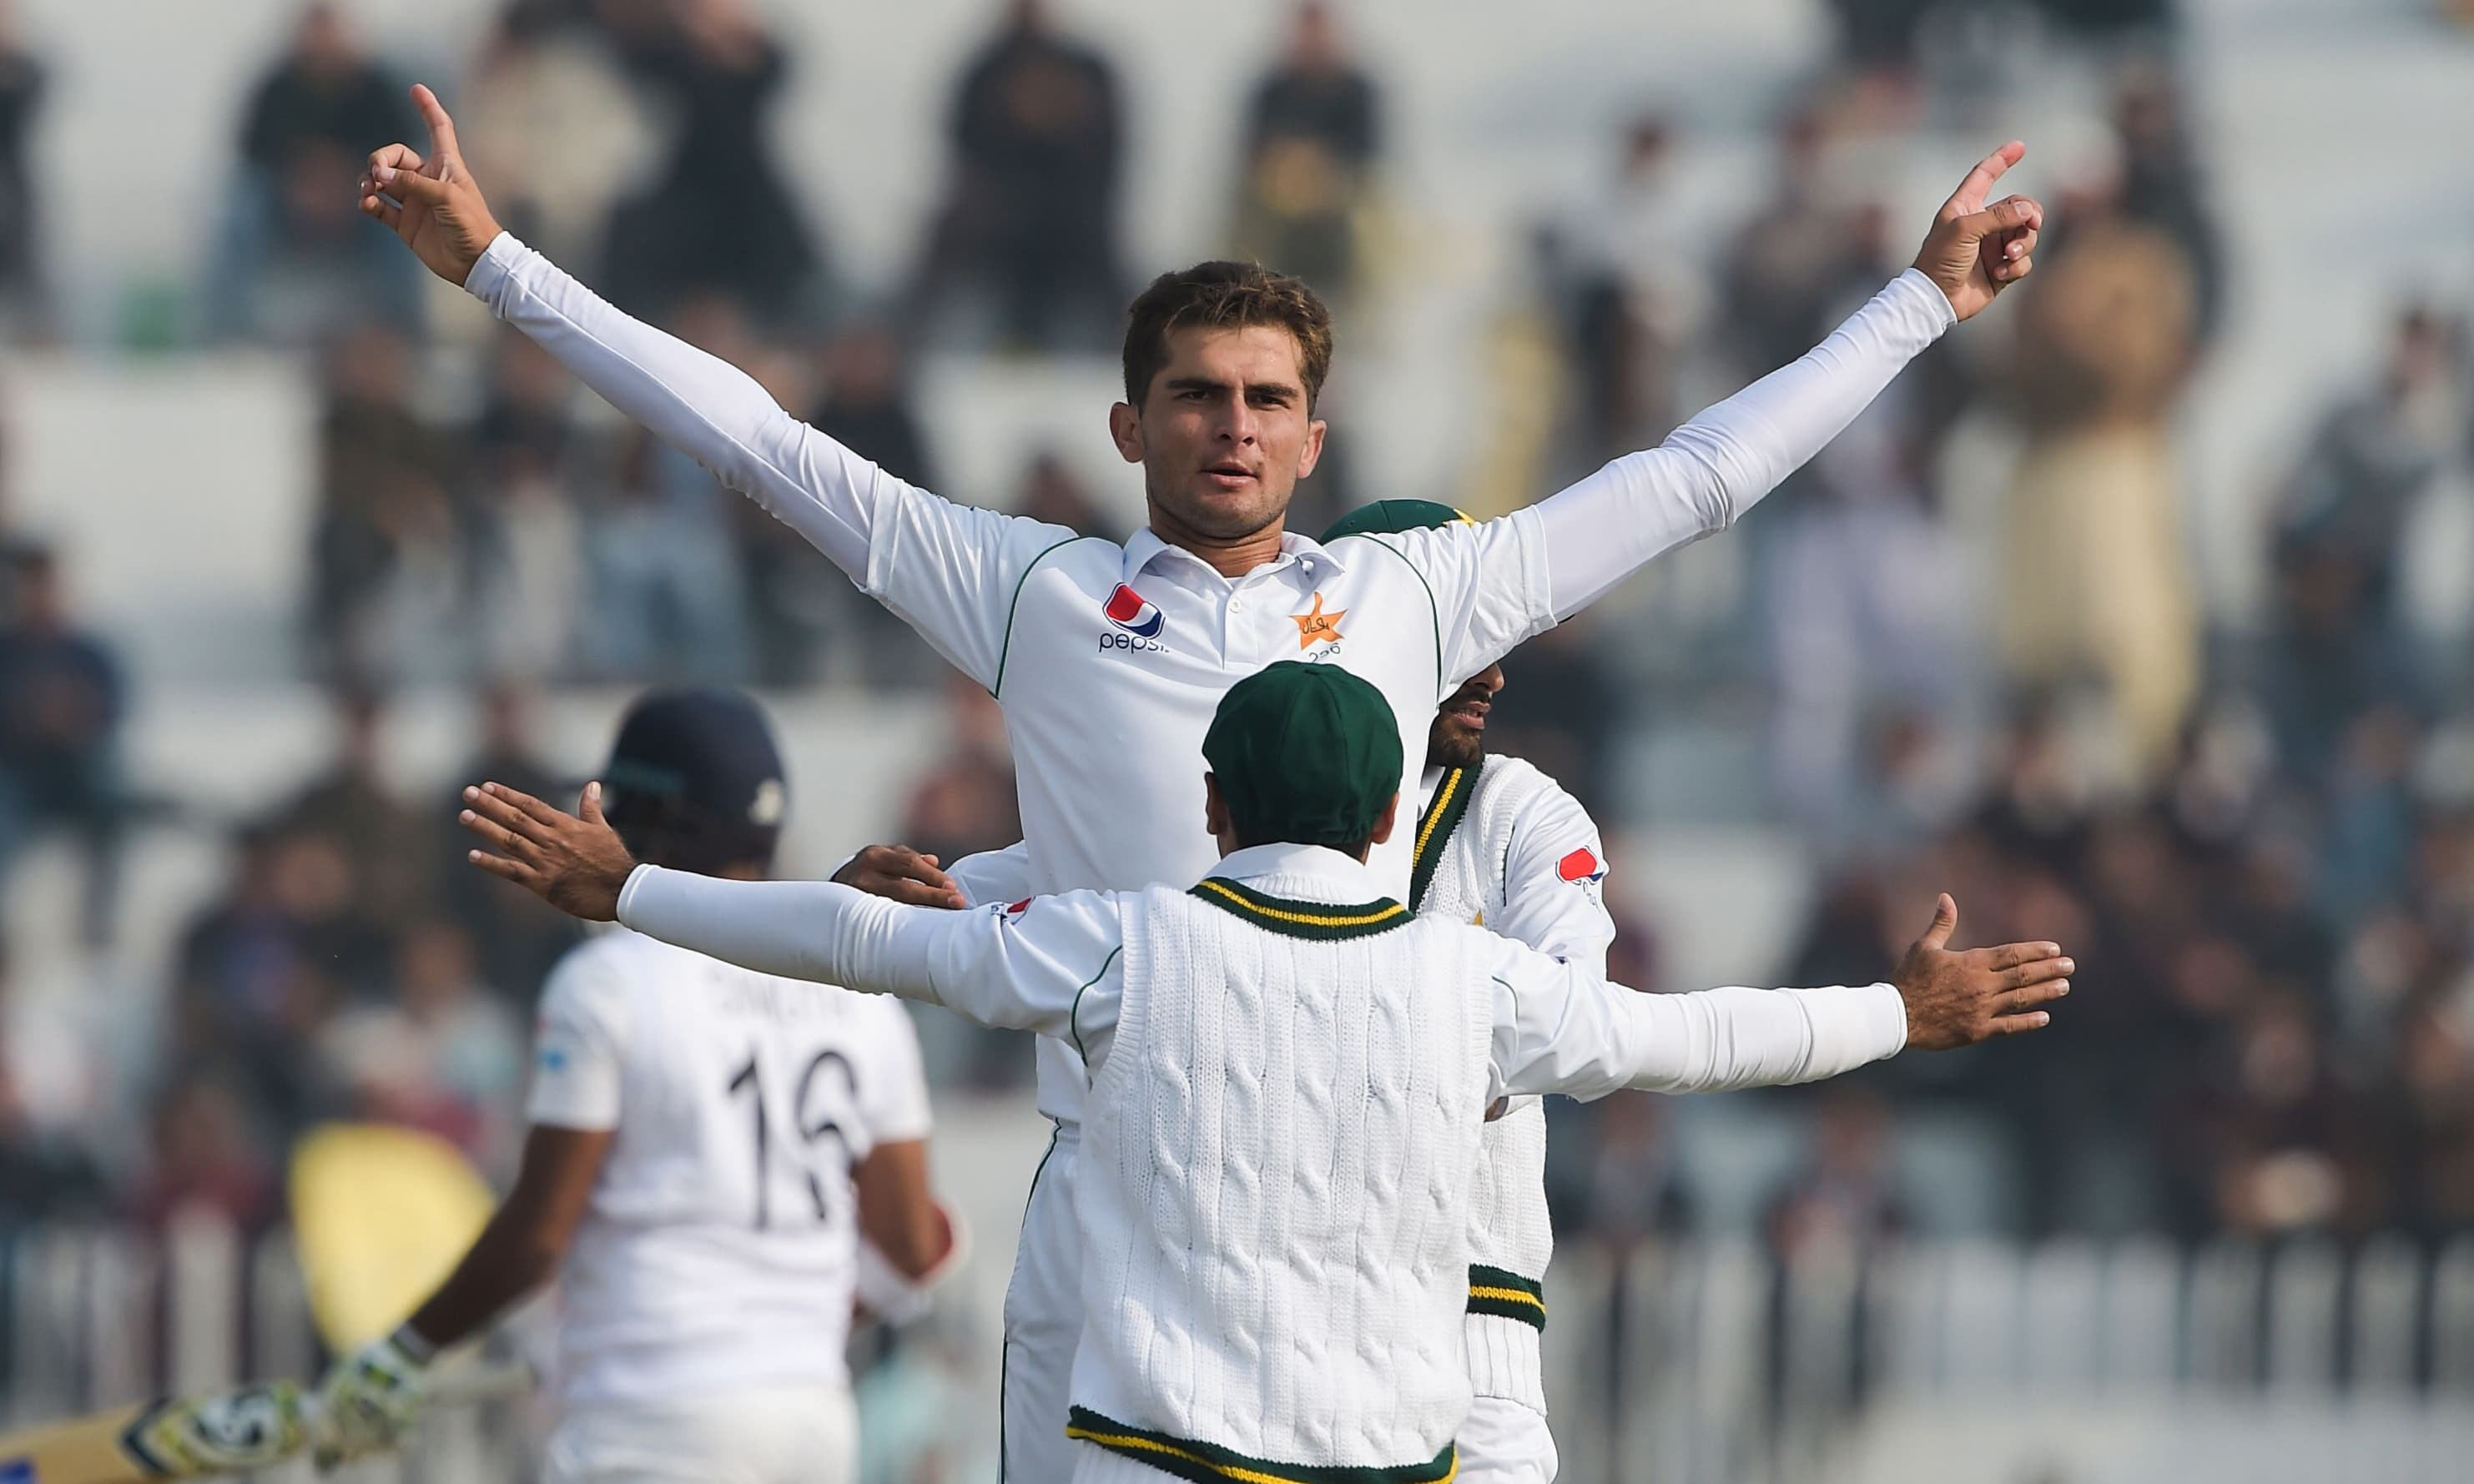 Pakistan's Shaheen Shah celebrates with teammates after dismissing Sri Lanka's Dimuth Karunaratne during the first day of the first Test cricket match between Pakistan and Sri Lanka at the Pindi Cricket Stadium in Rawalpindi on Dec 11. — AFP